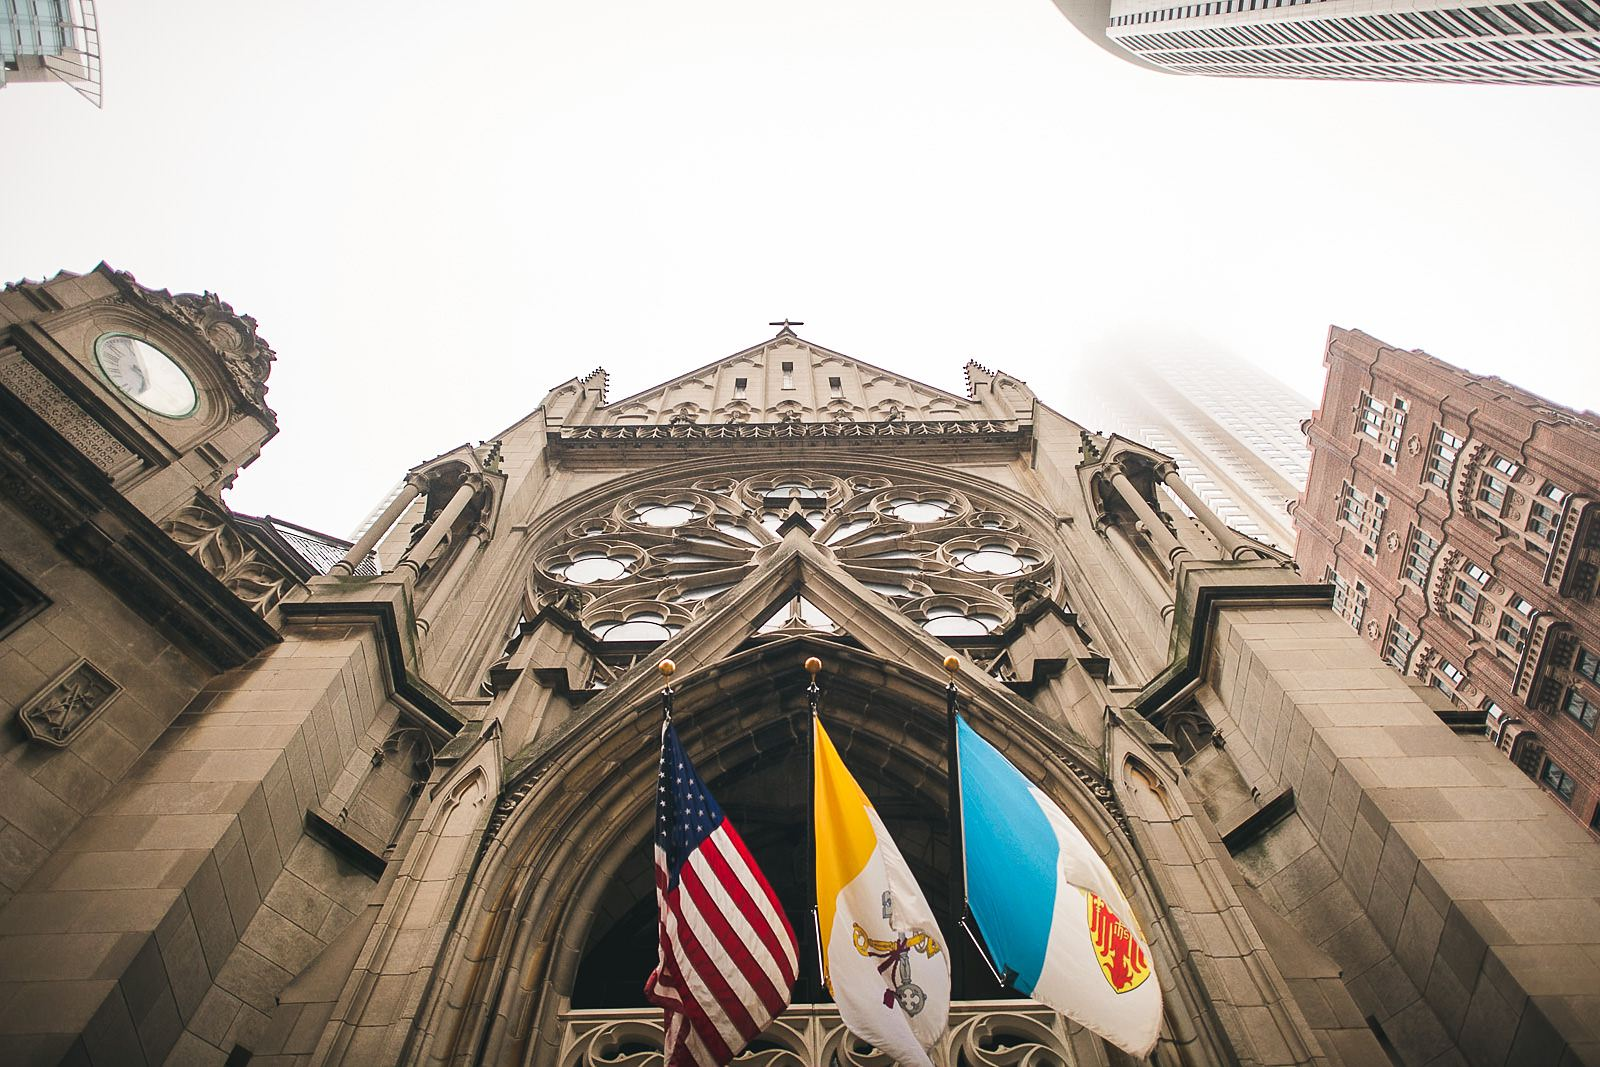 18 st james chapel flags - Ivy Room Wedding // Audrey + Tyler